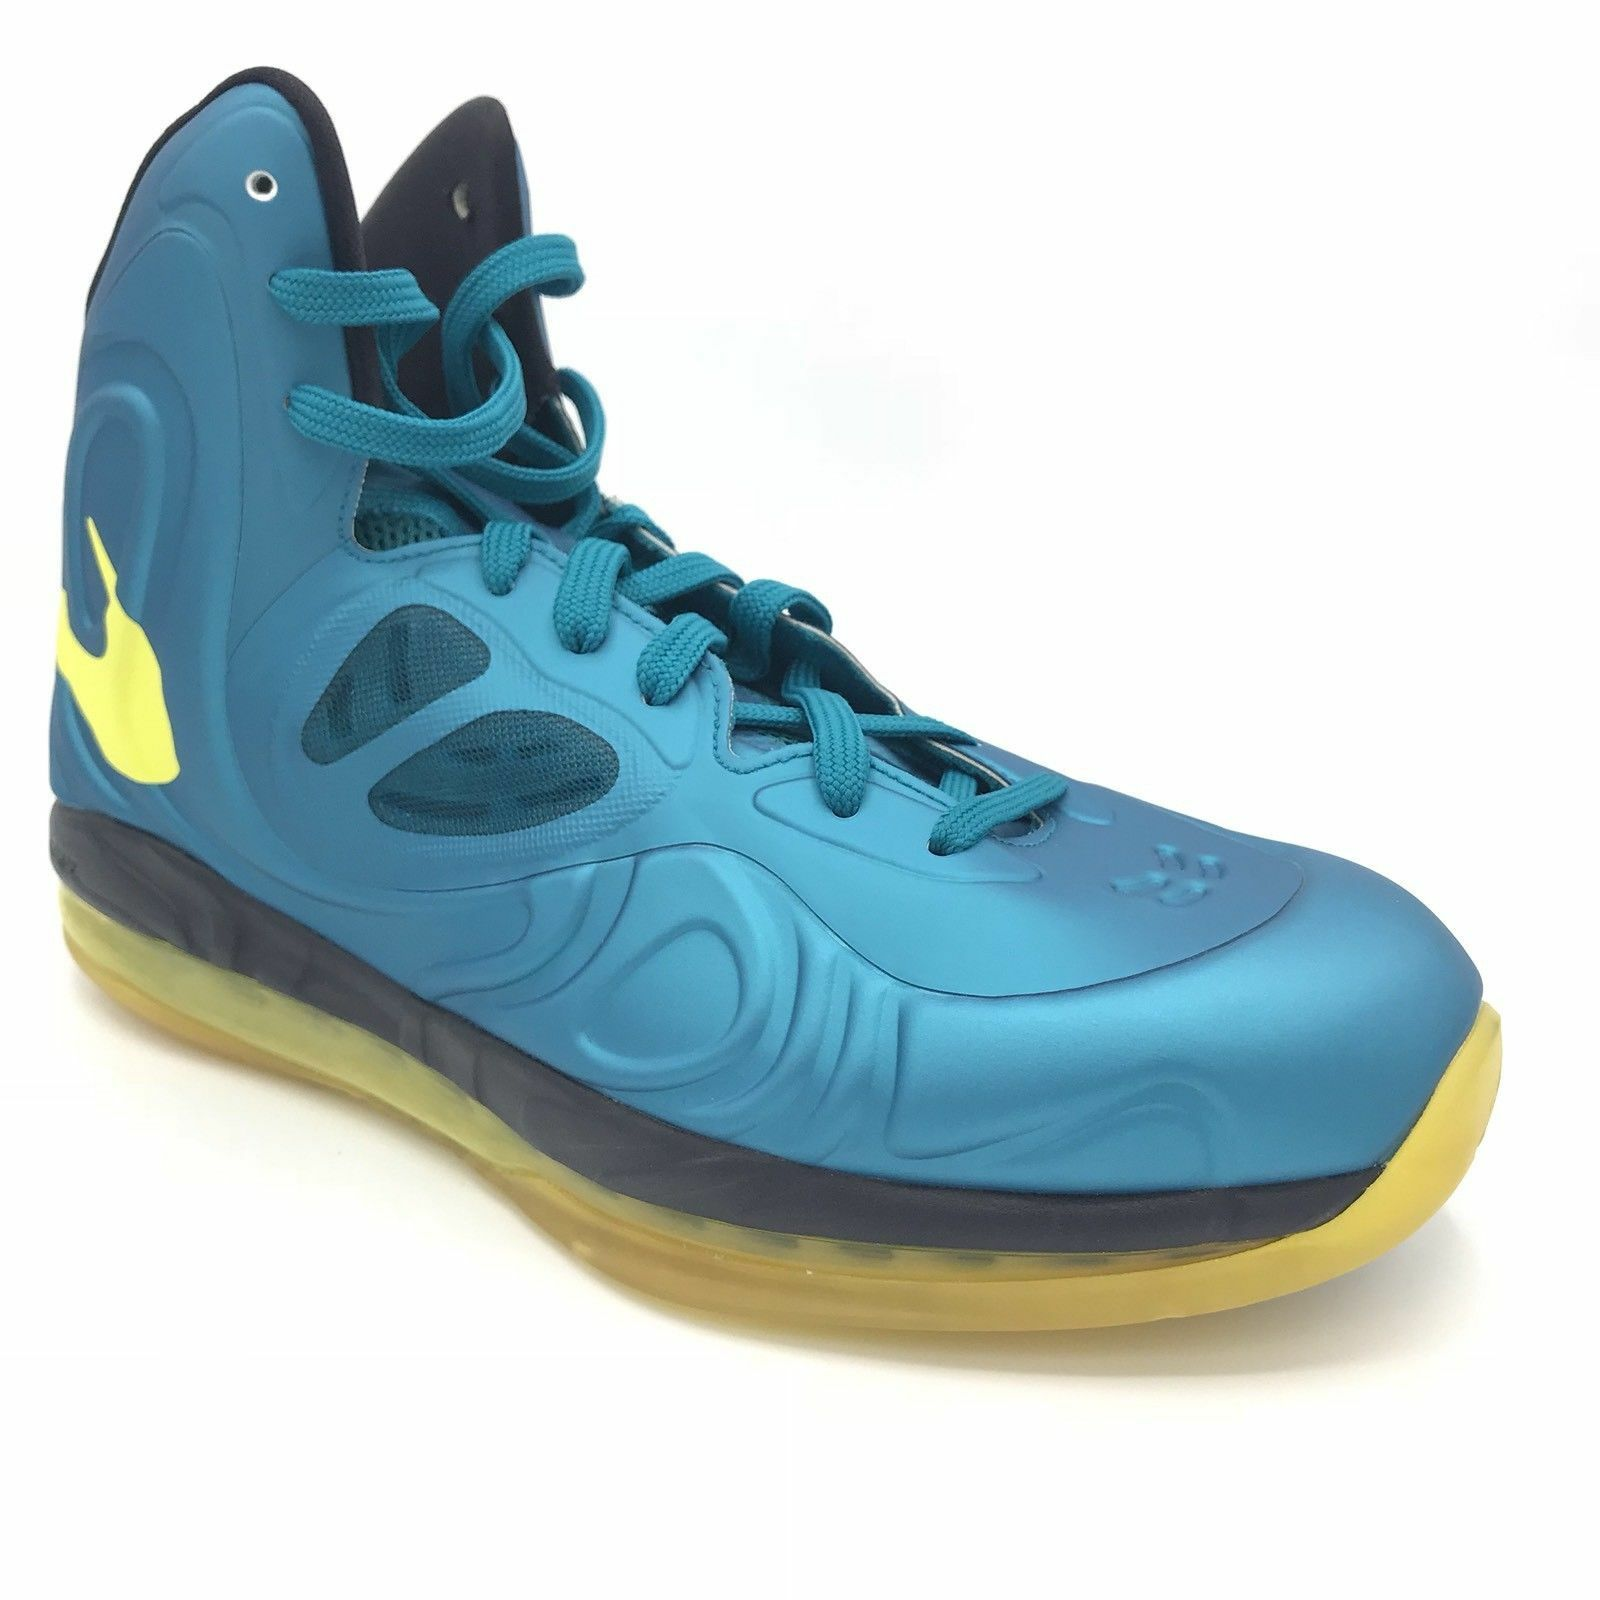 7ccedc494a4 Details about Nike Air Max Hyperposite Mens Tropical Teal Sonic Yellow  524862-303 Sz 10